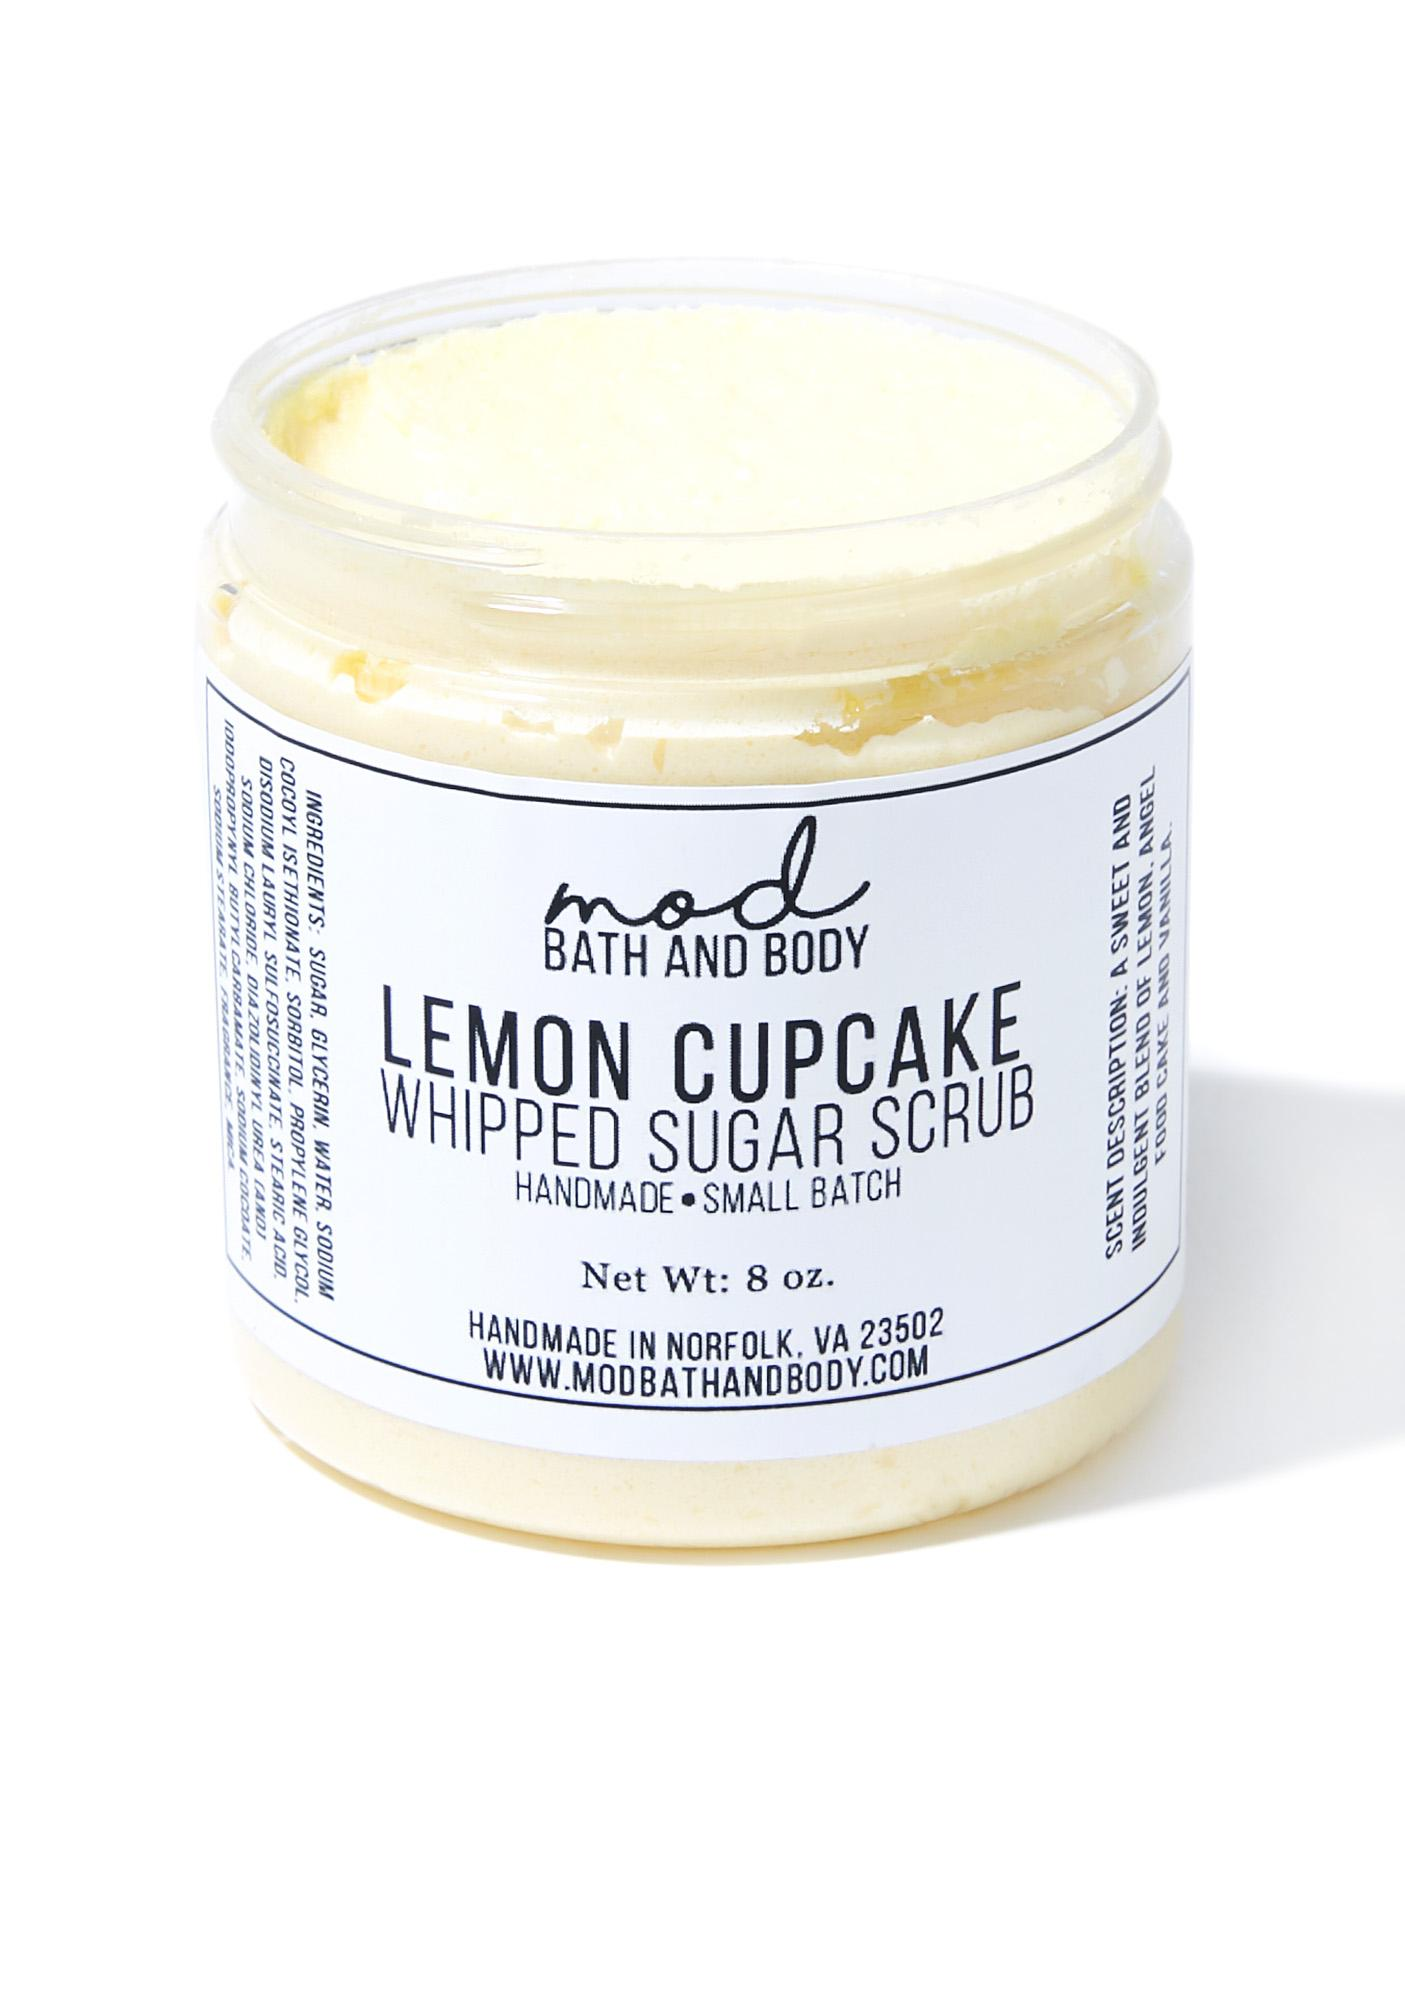 Mod Bath and Body Lemon Cupcake Whipped Sugar Scrub